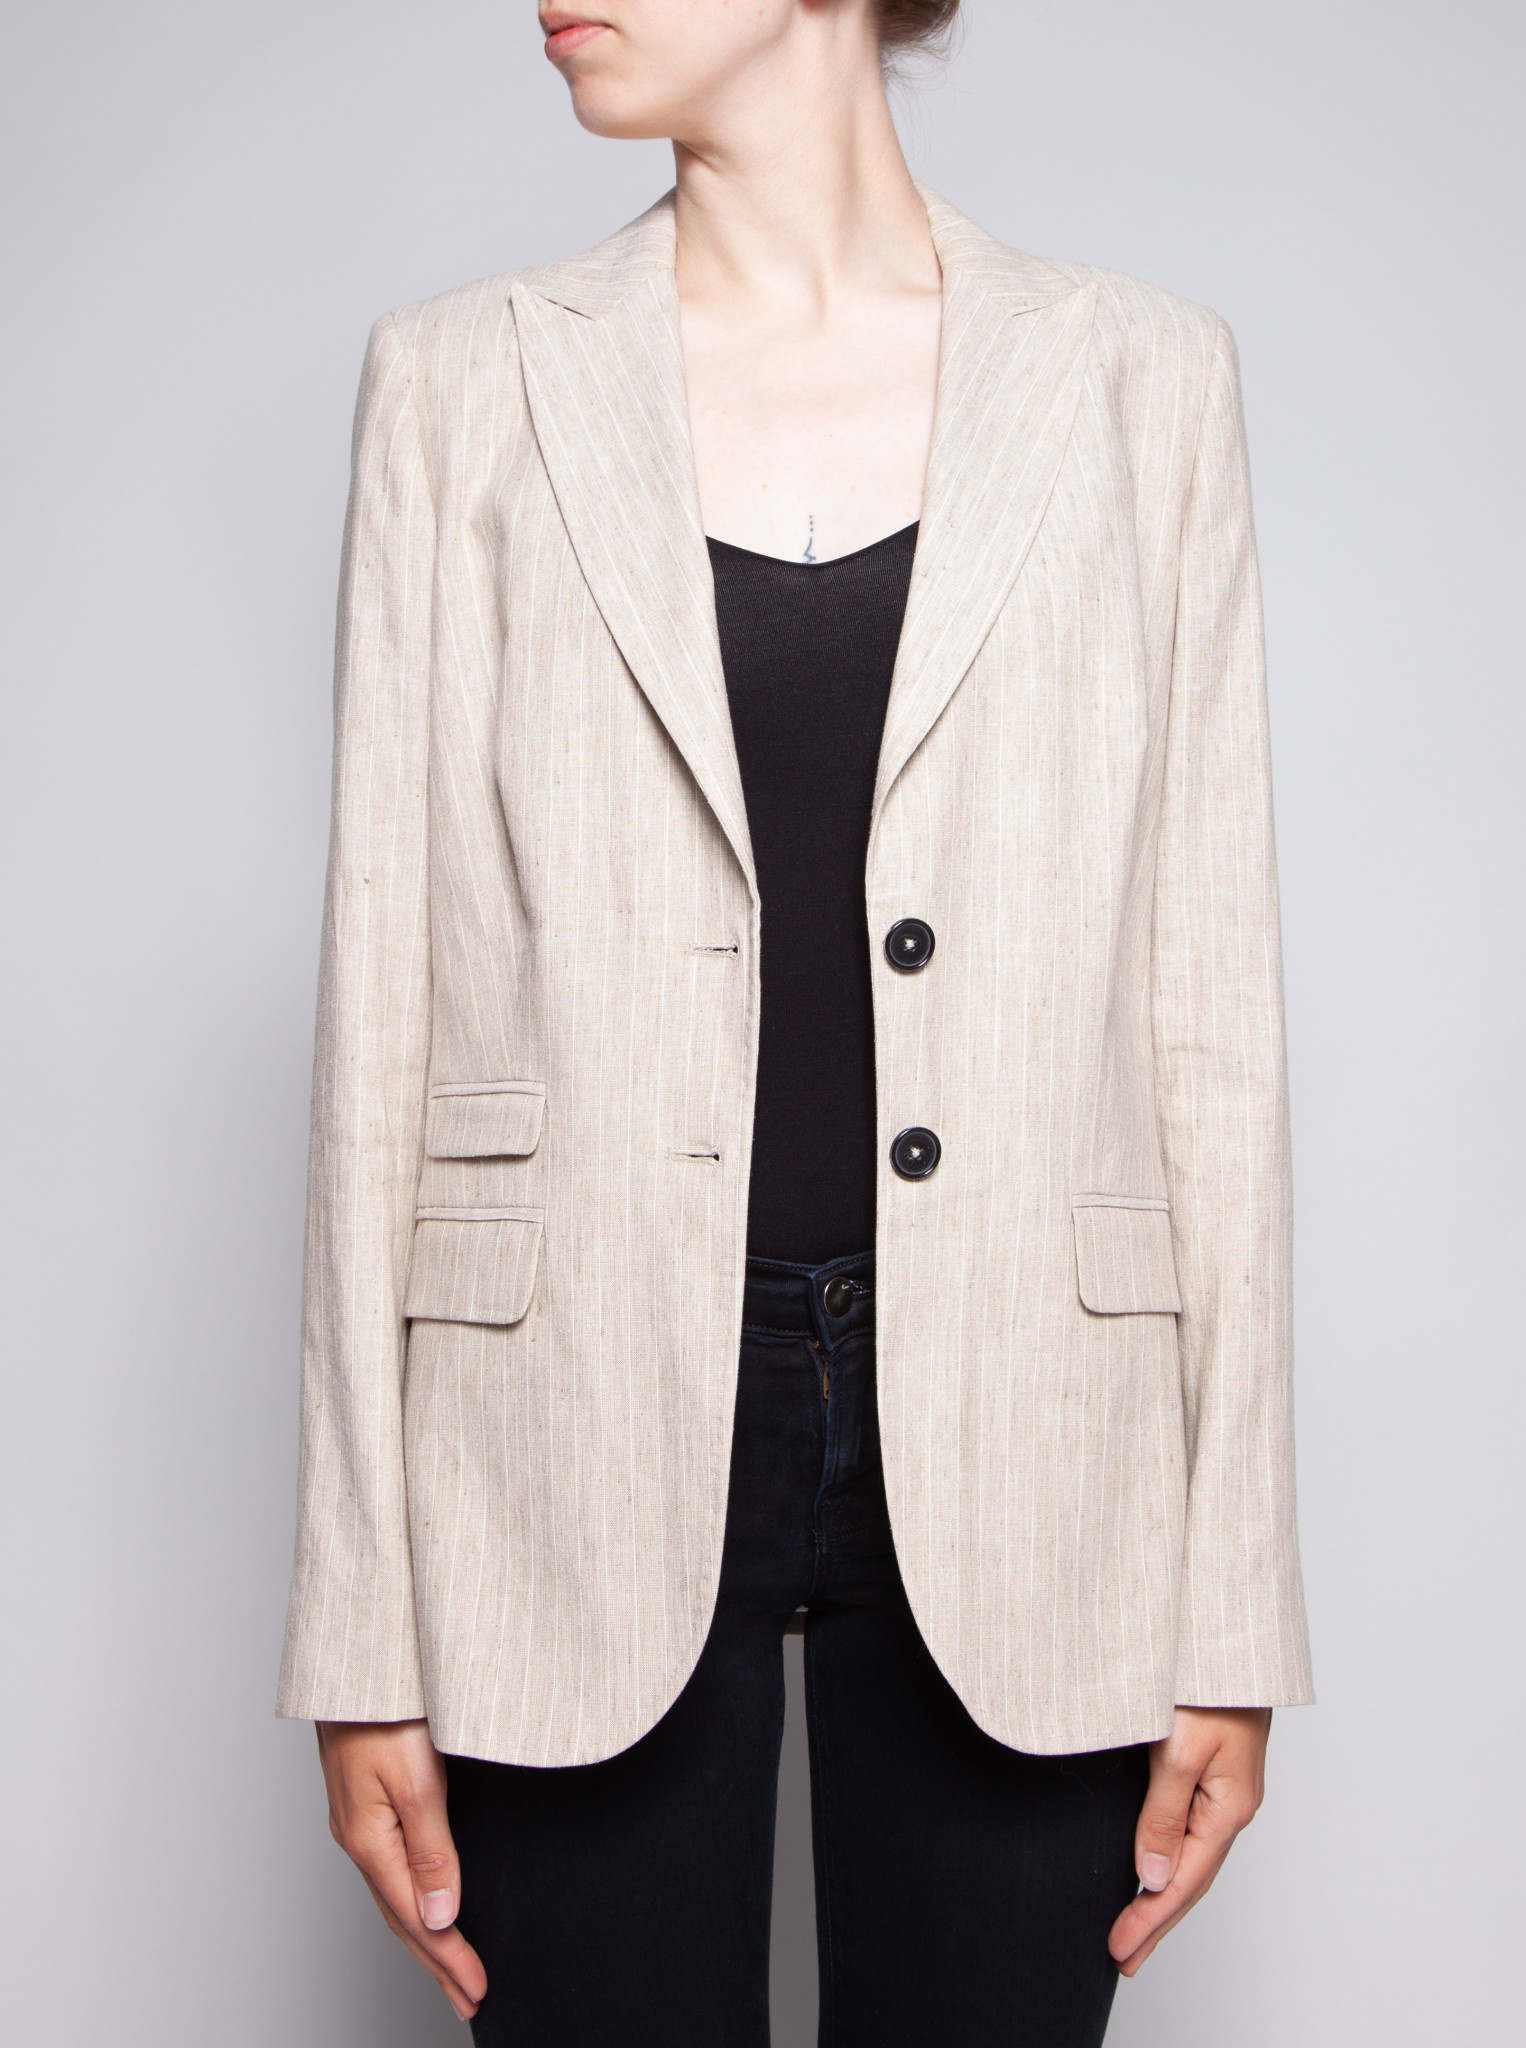 Façonnable BEIGE AND WHITE STRIPED BLAZER - NEW